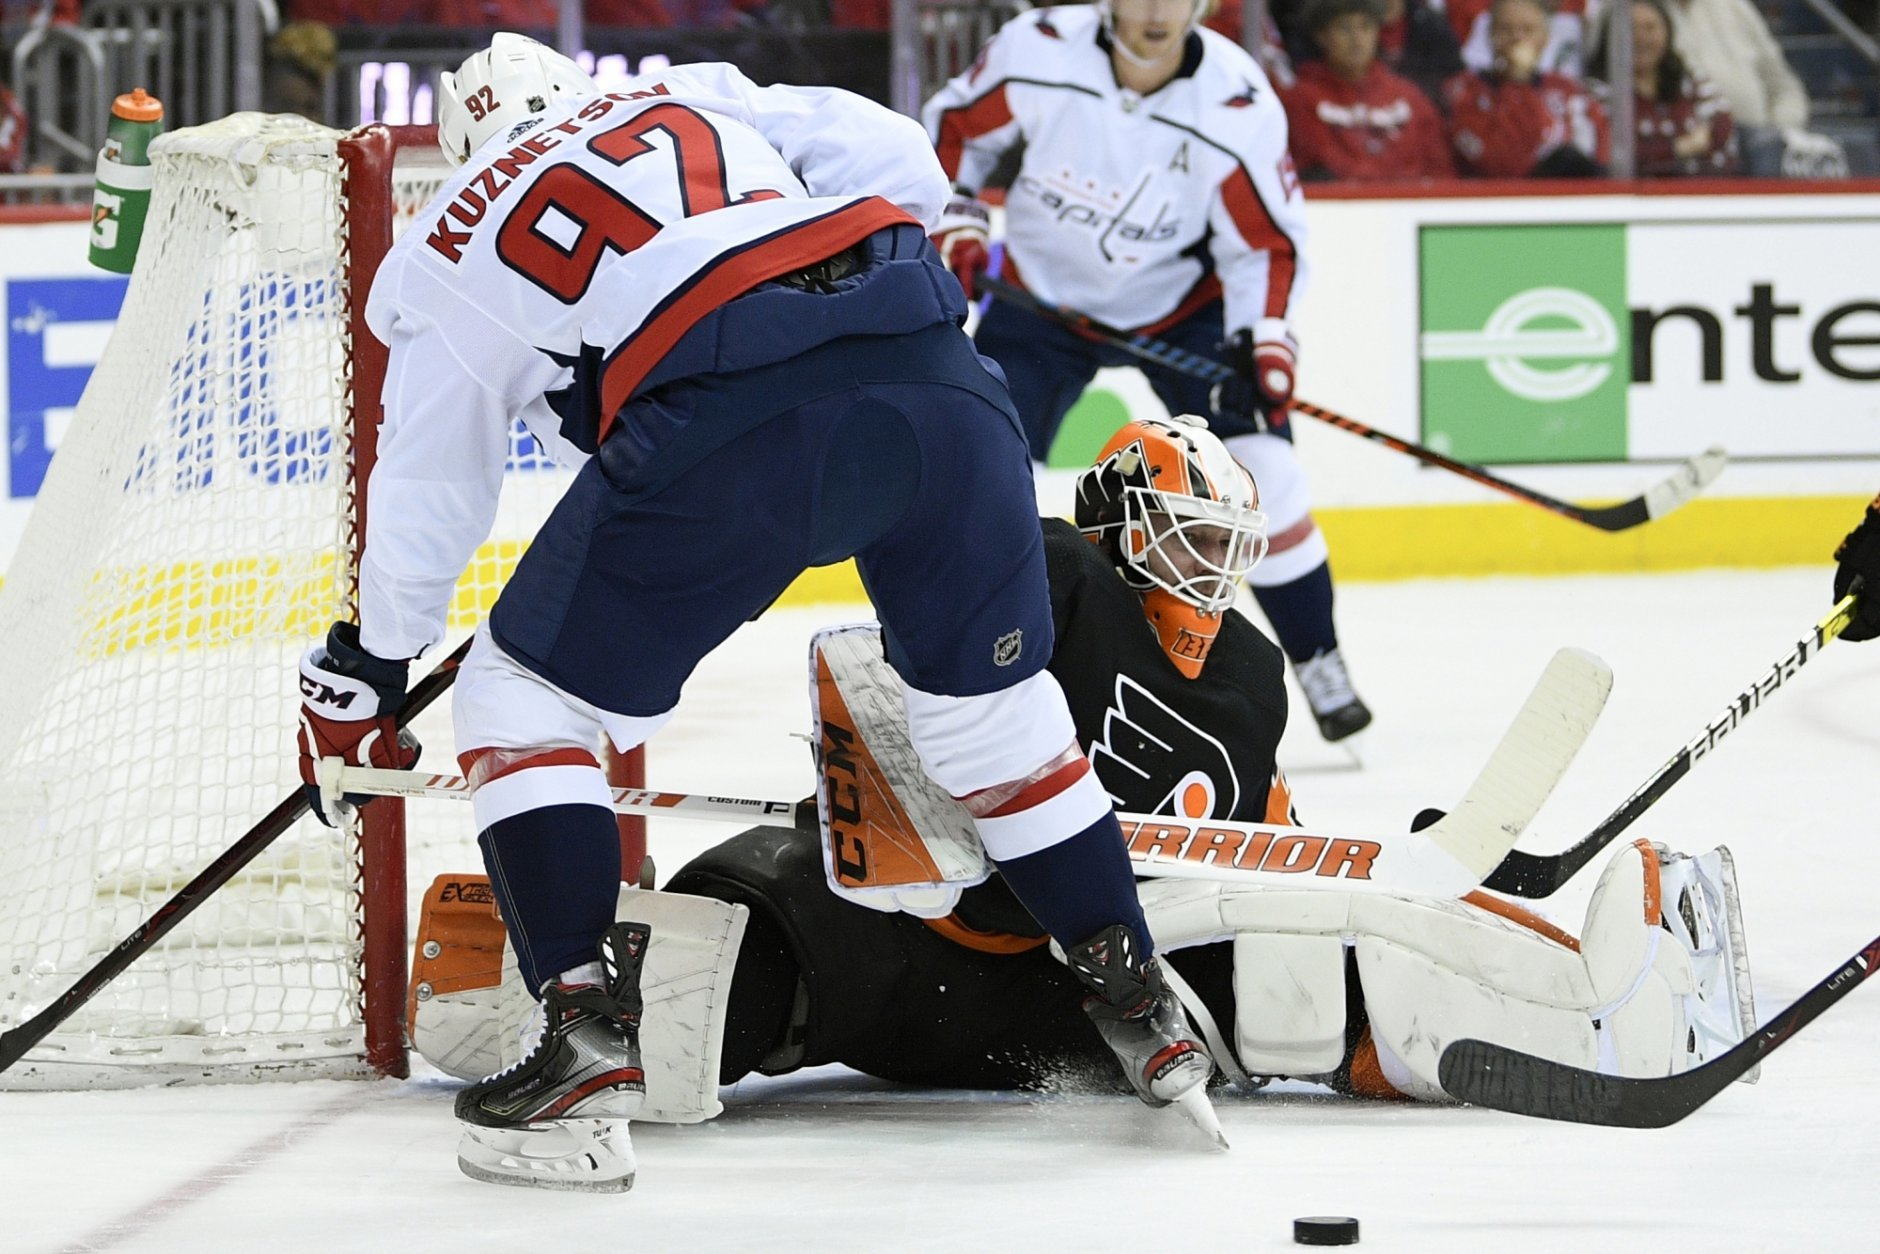 Philadelphia Flyers goaltender Brian Elliott (37) looks at the puck during the first period of an NHL hockey game against Washington Capitals center Evgeny Kuznetsov (92), of Russia, Sunday, March 24, 2019, in Washington. (AP Photo/Nick Wass)